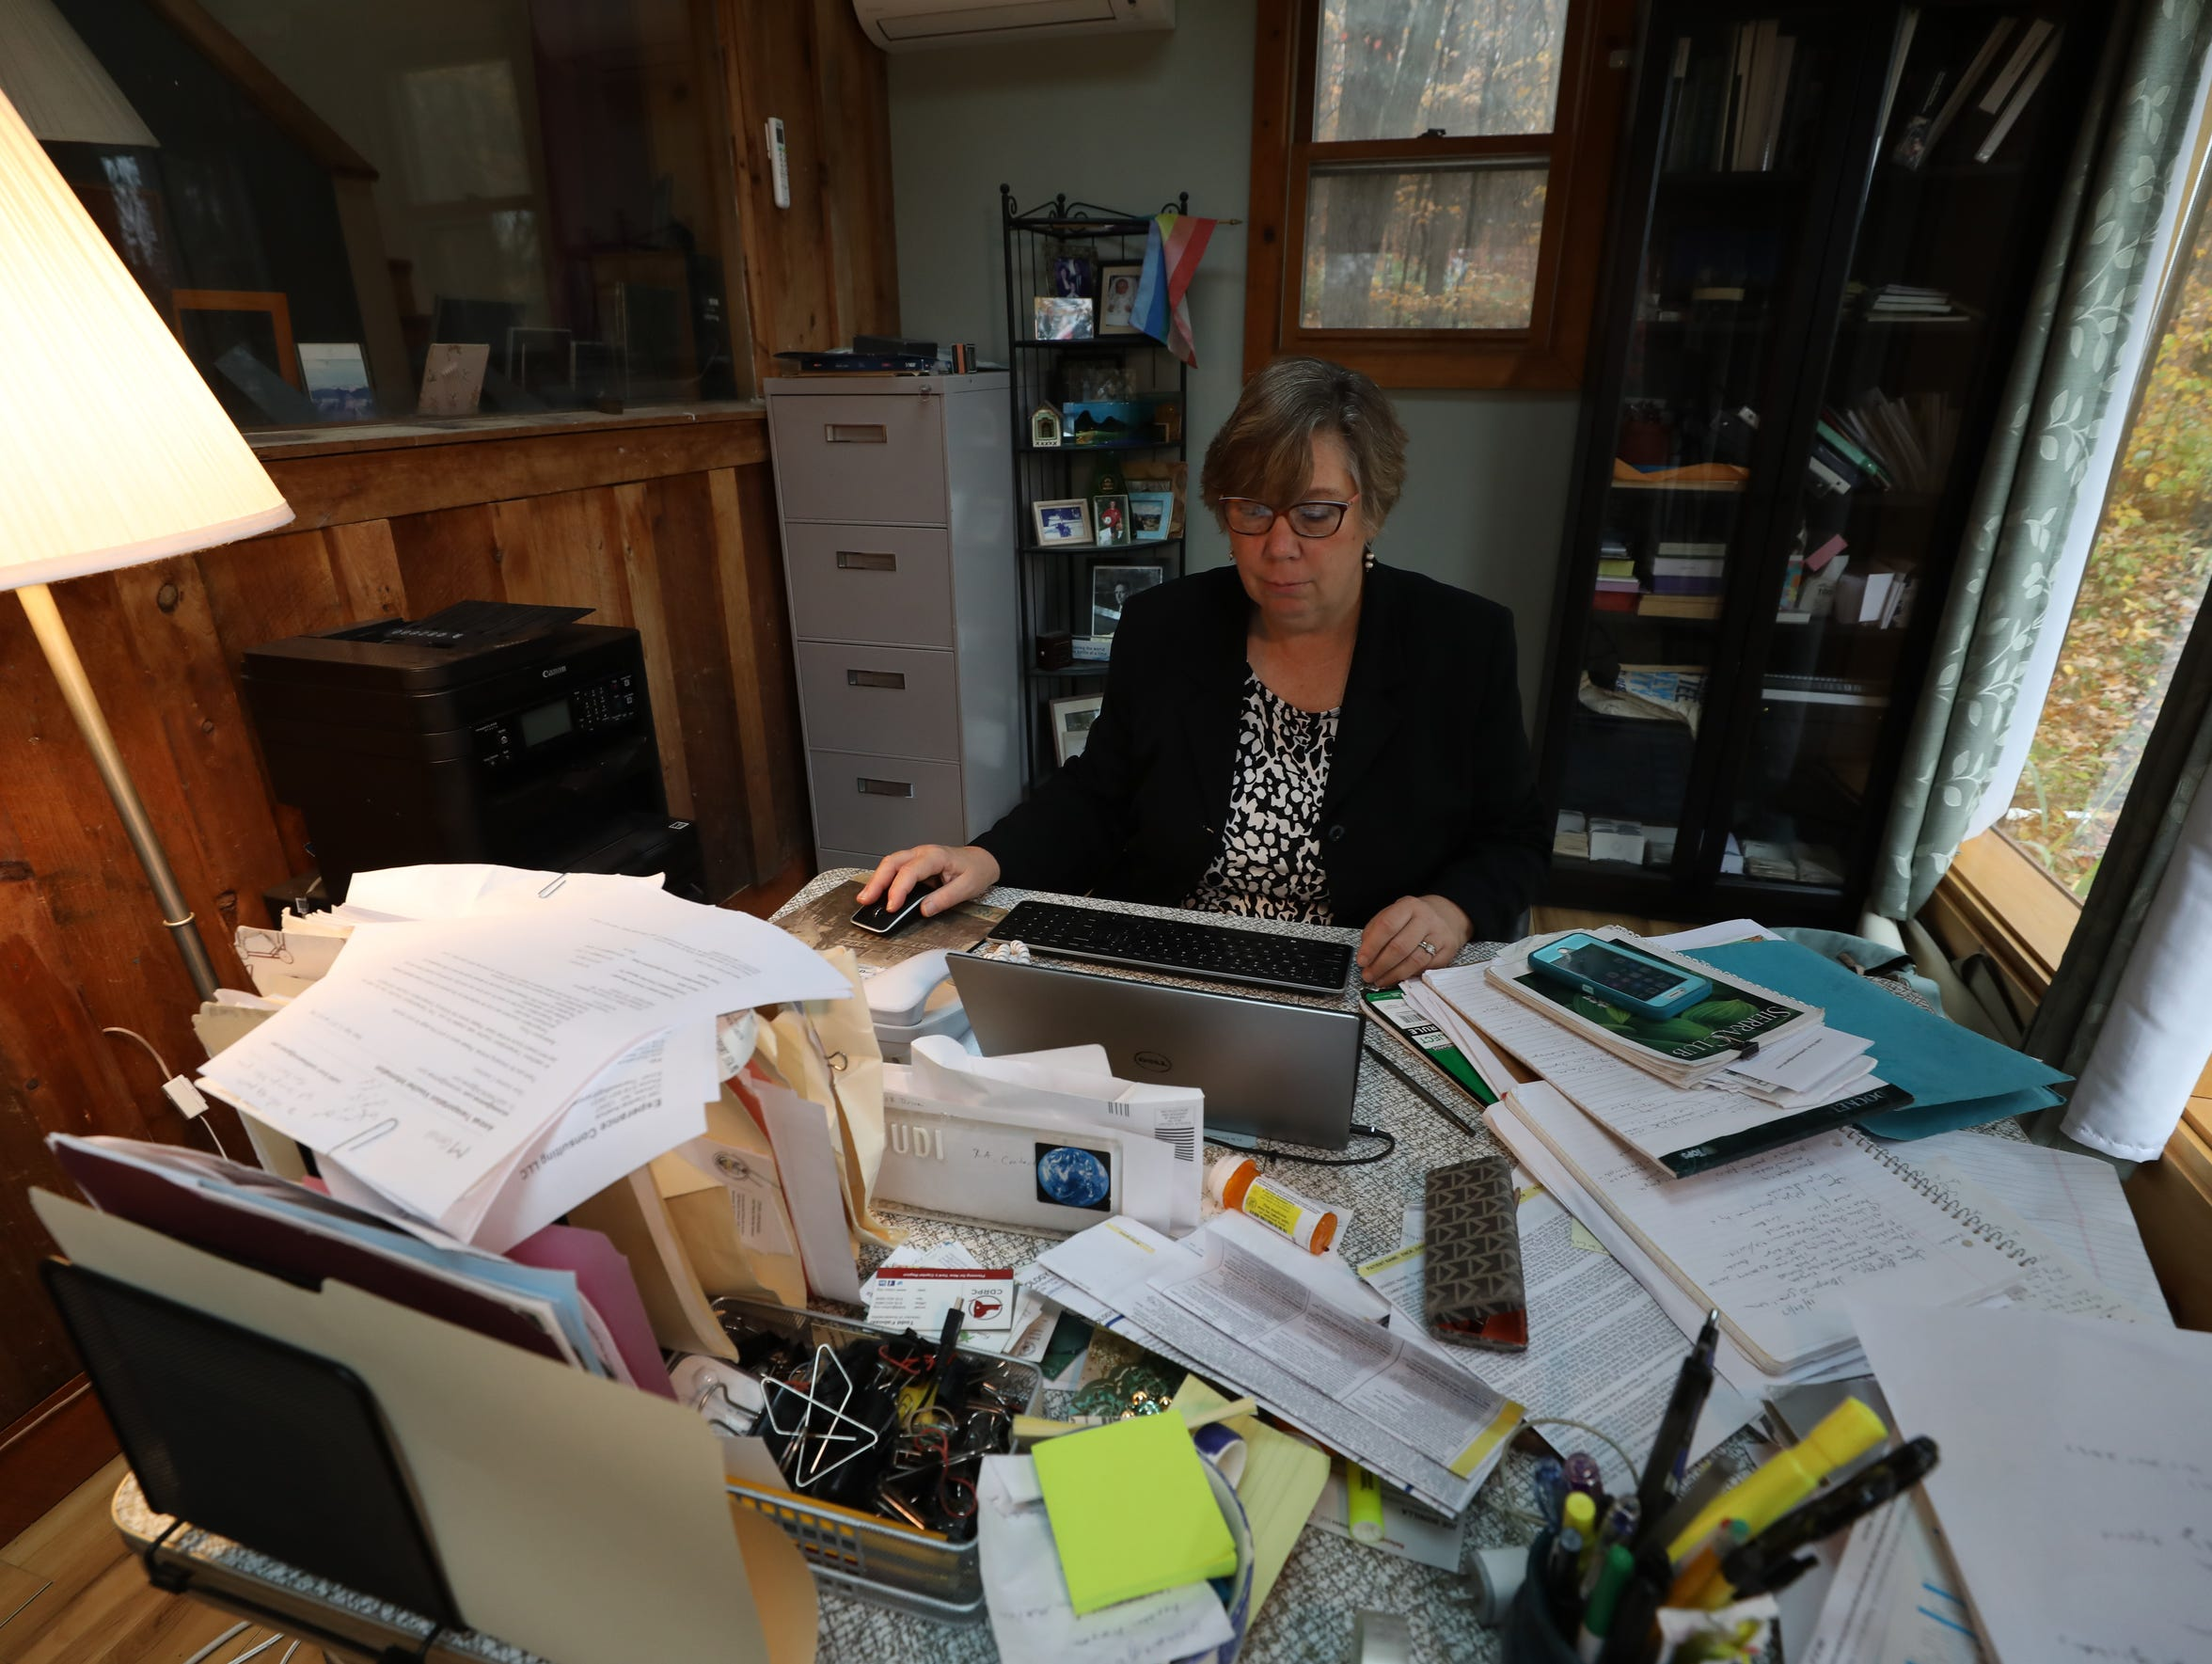 Former U.S. Environmental Protection Agency Regional Administrator for District 2, Judith Enck, in her home office, where she was interviewed about DuPont's pollution in Pompton Lakes.